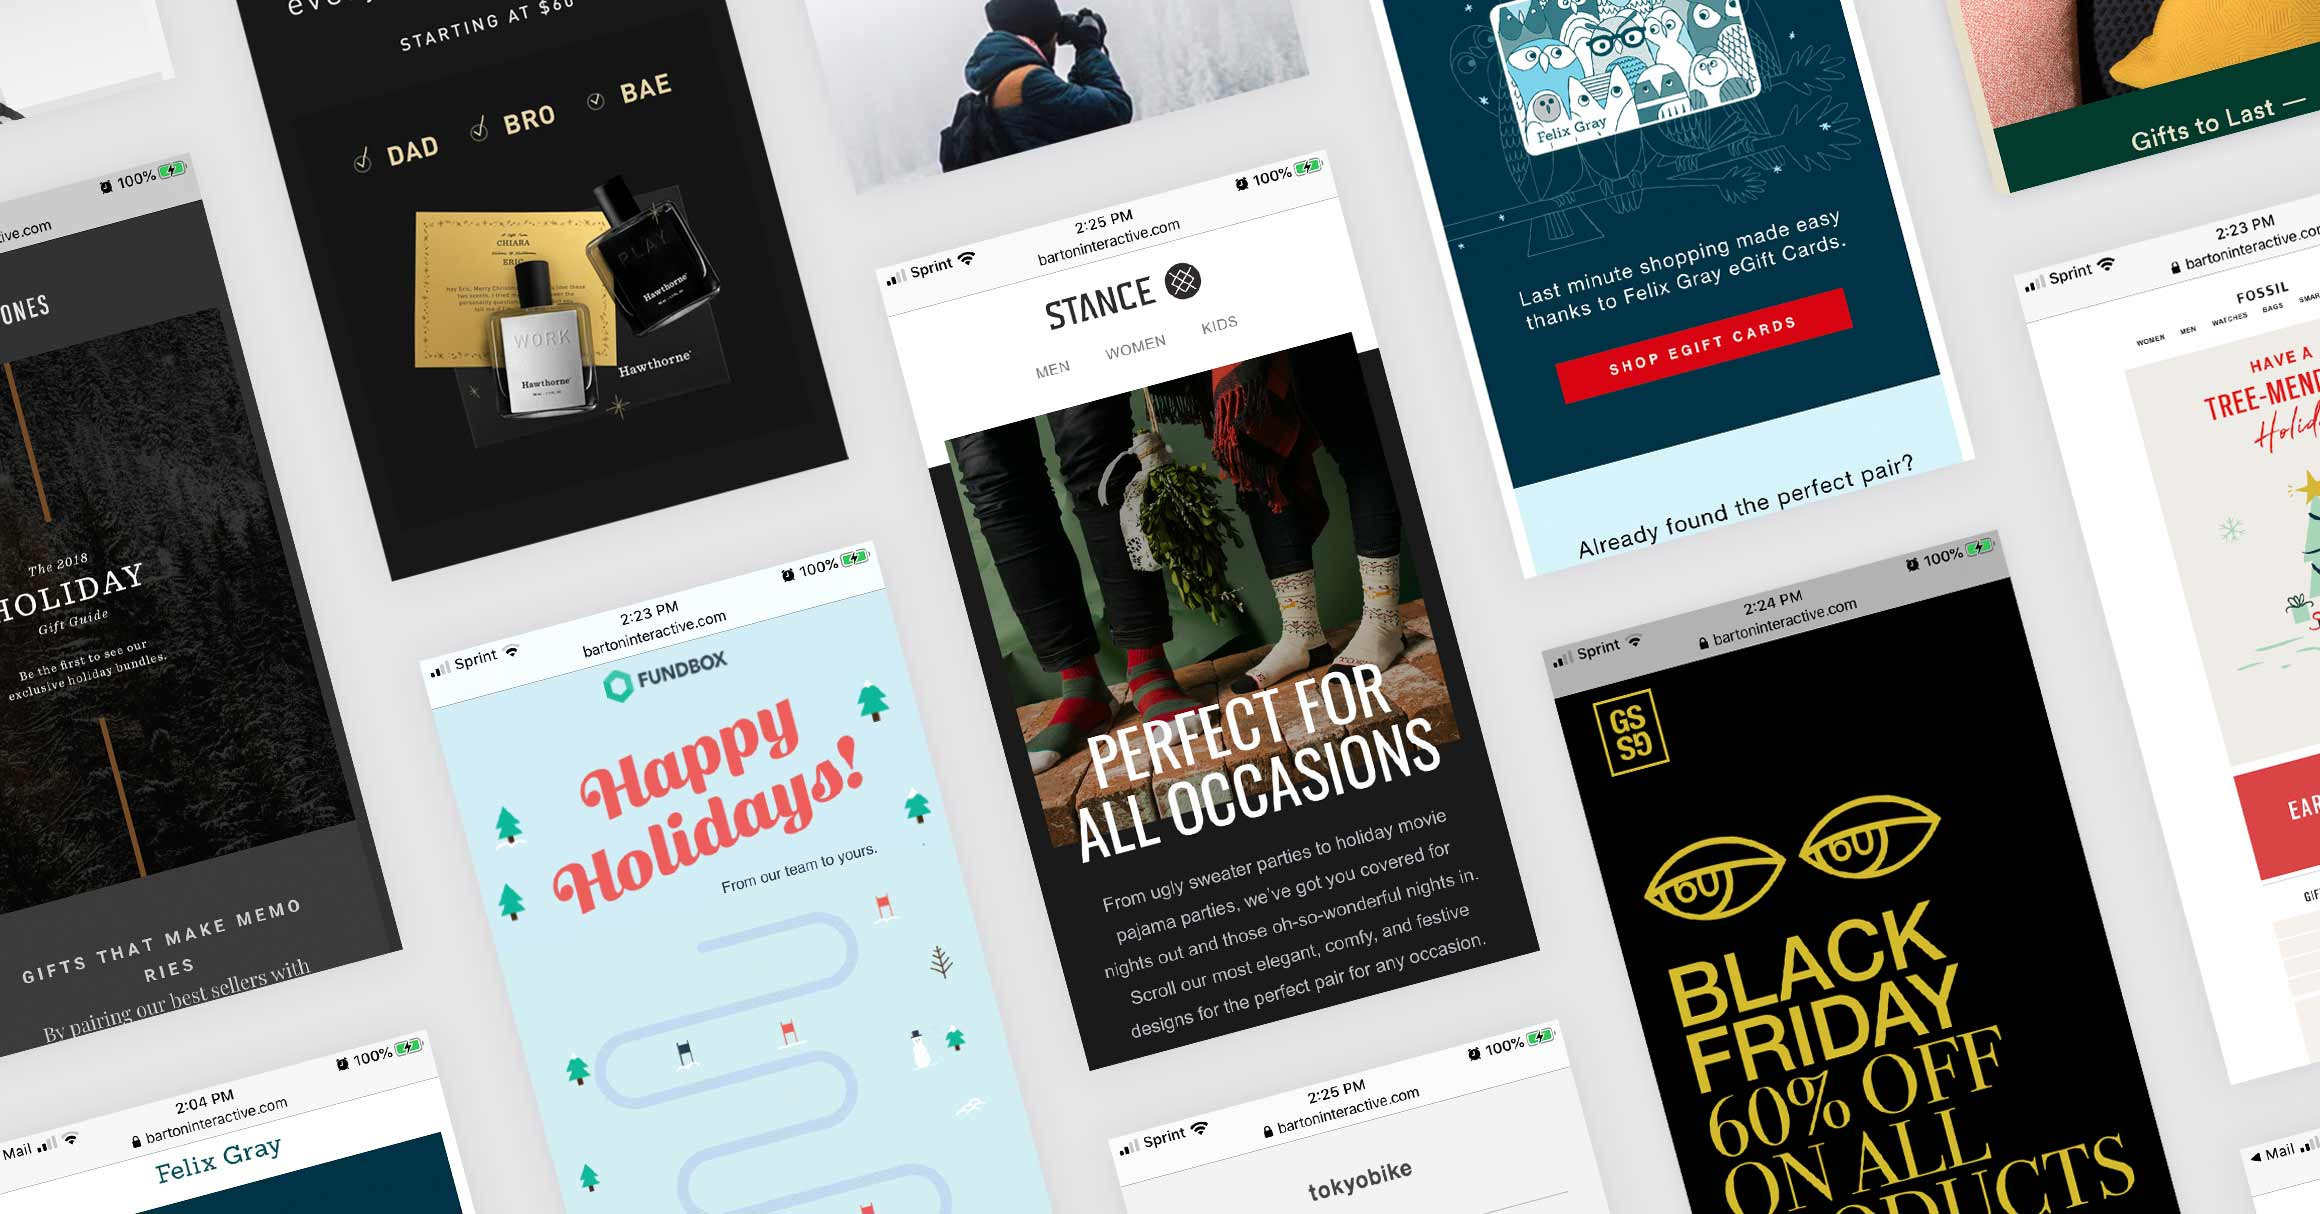 Holiday Email Inspiration Roundup